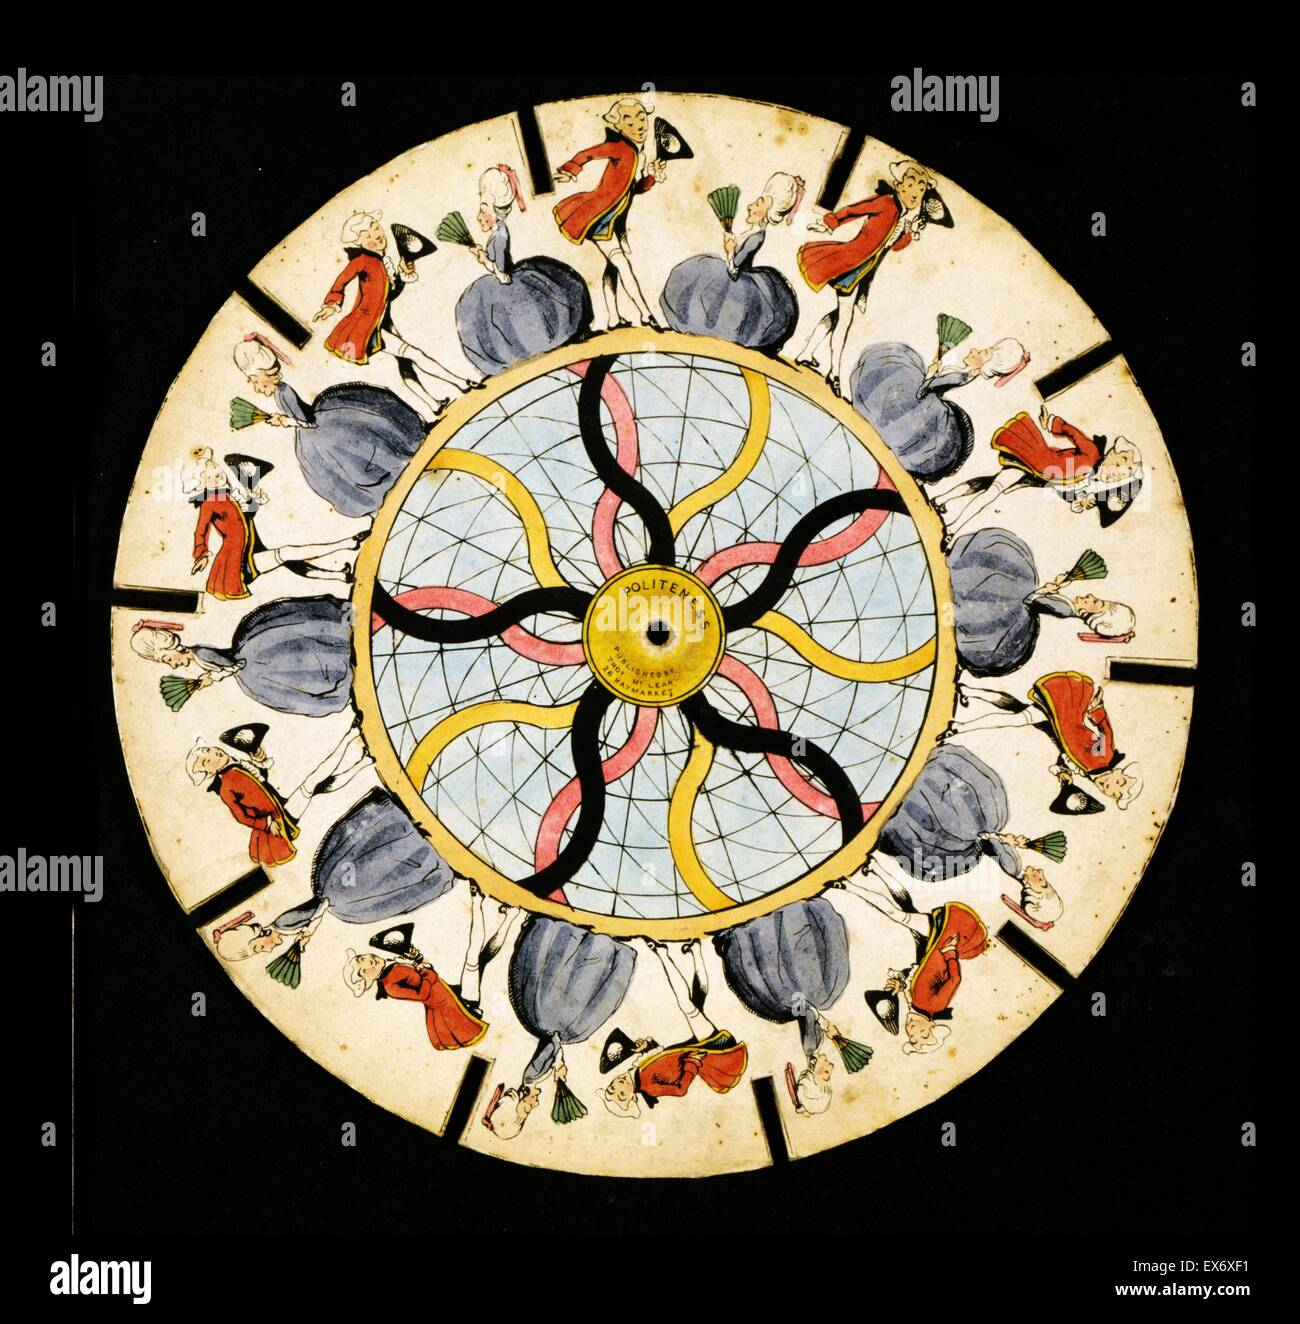 Zoetrope optical illusion disc which is spun displaying the illusion of motion of a man bowing and a woman curtsying - Stock Image